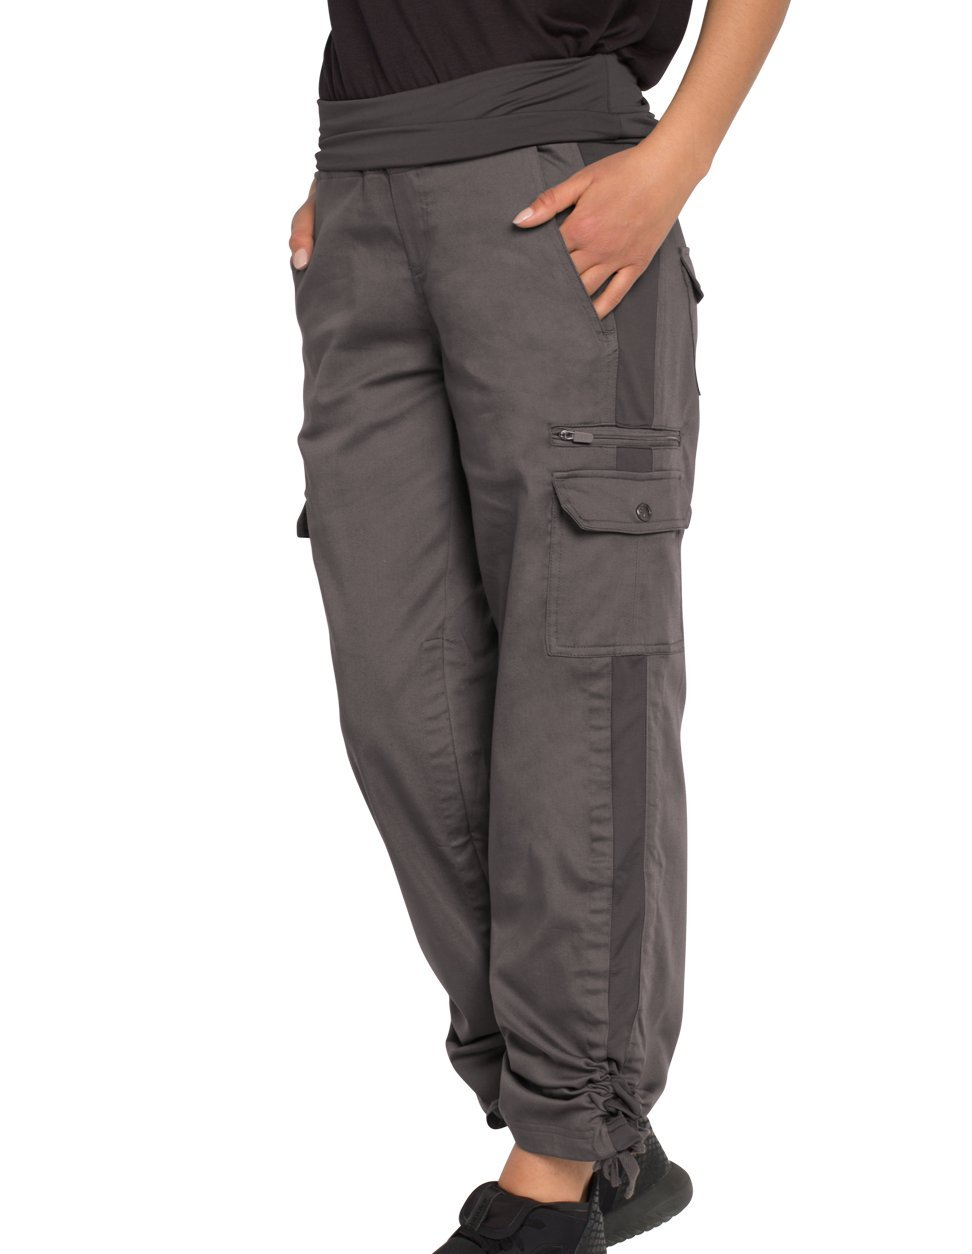 SCOTTeVEST Margaux Cargaux Travel Pants -11 Pockets- Travel Cargo Pants (XXL, Gray)